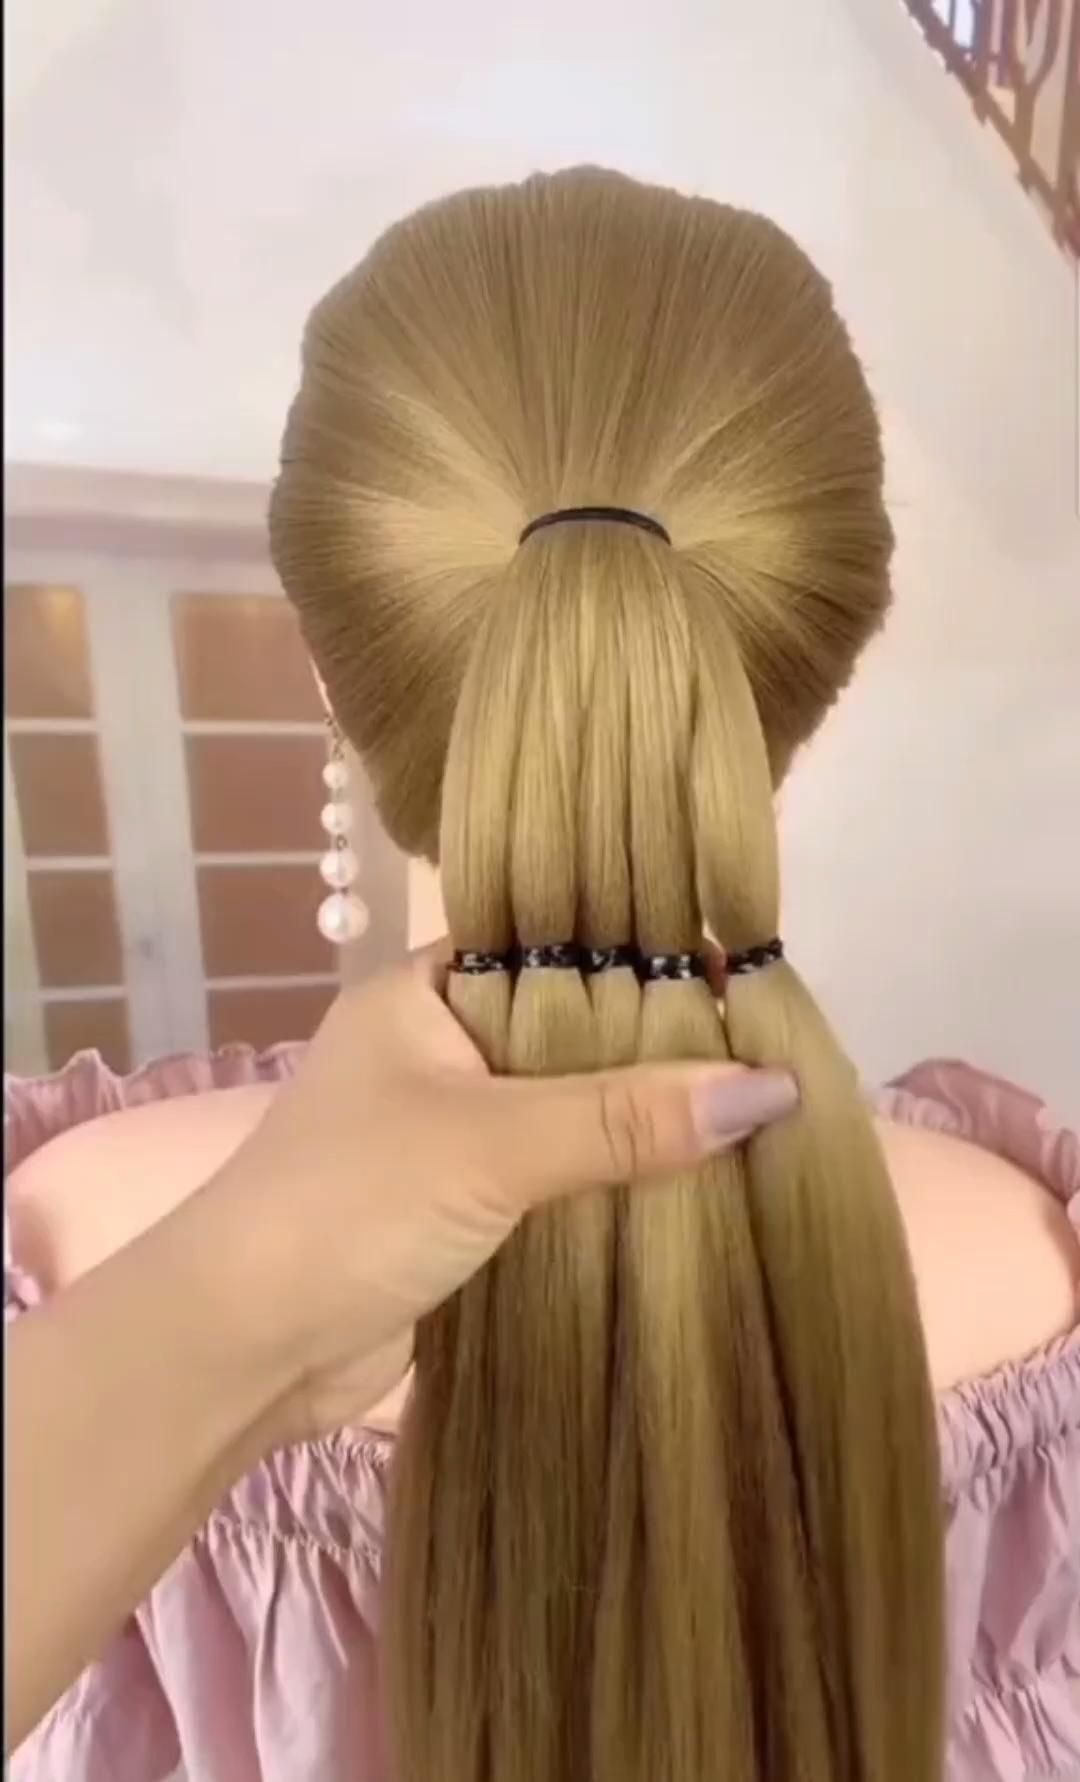 Hairstyle Ideal Jul 30 2020 Video In 2020 Front Hair Styles Braids For Long Hair Beautiful Braided Hair